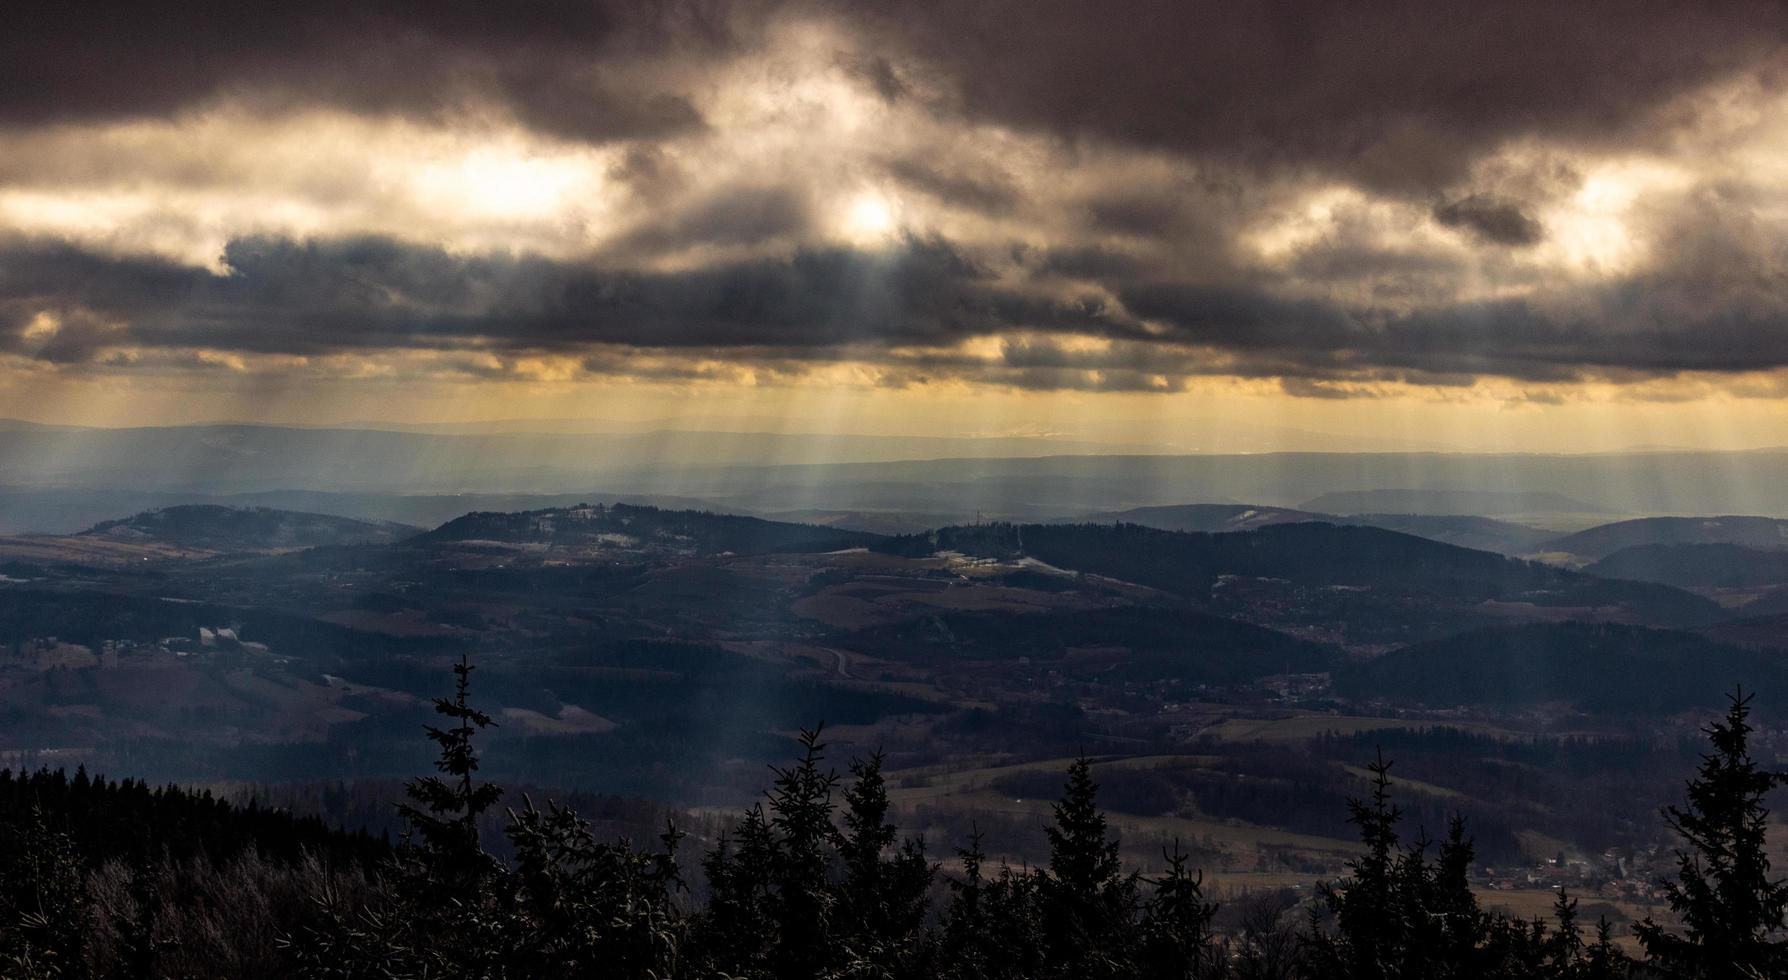 Sunbeams shining through clouds on mountains photo